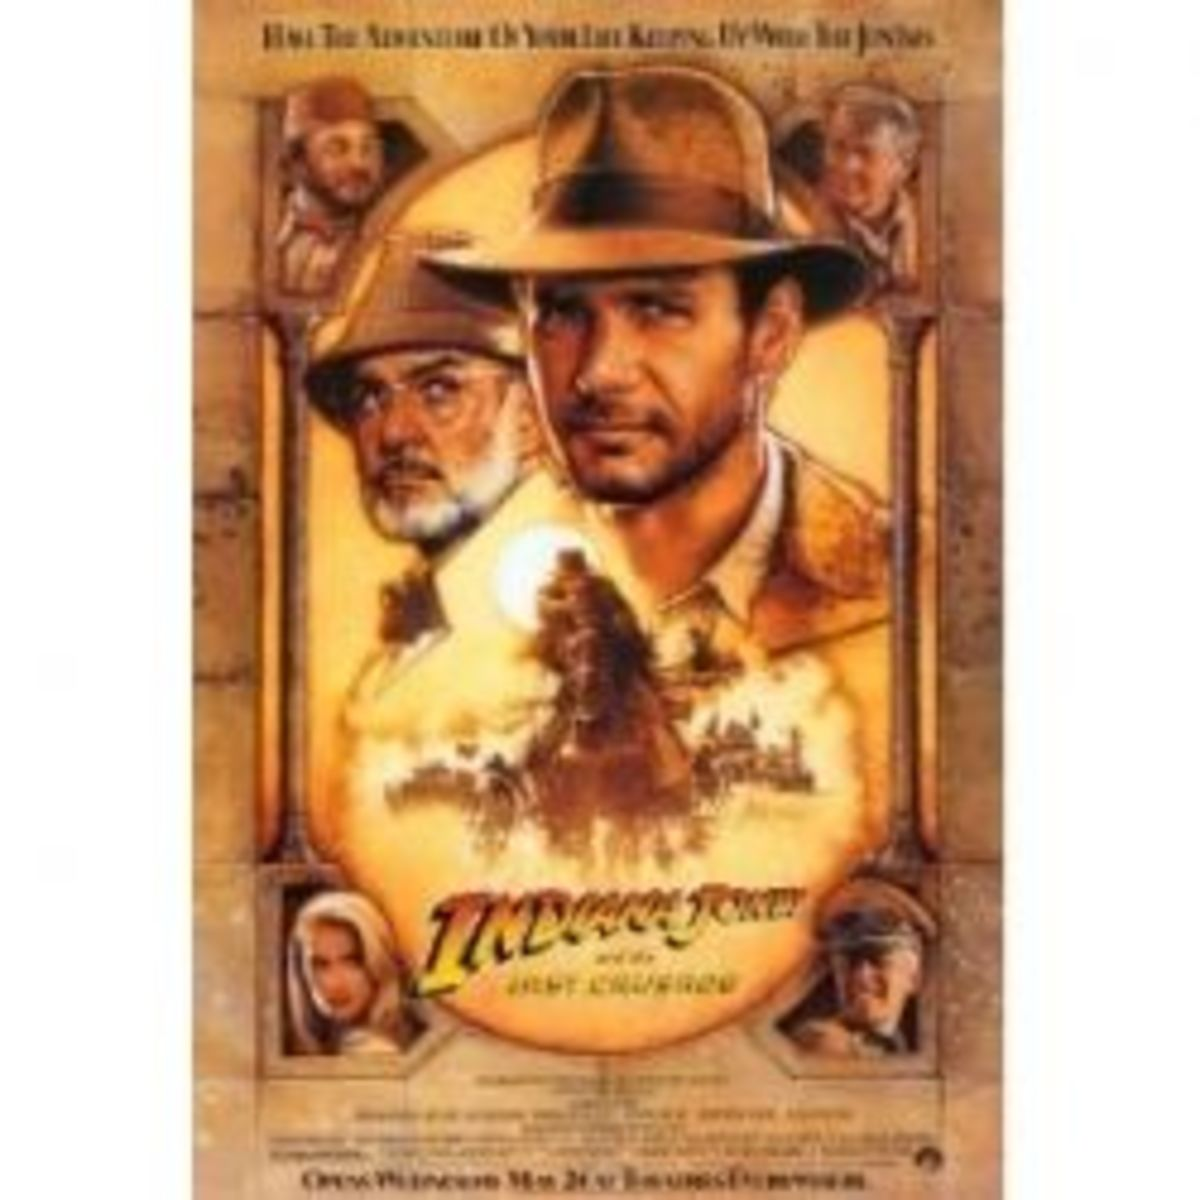 Indiana Jones Birthday Party Theme Supplies and Ideas